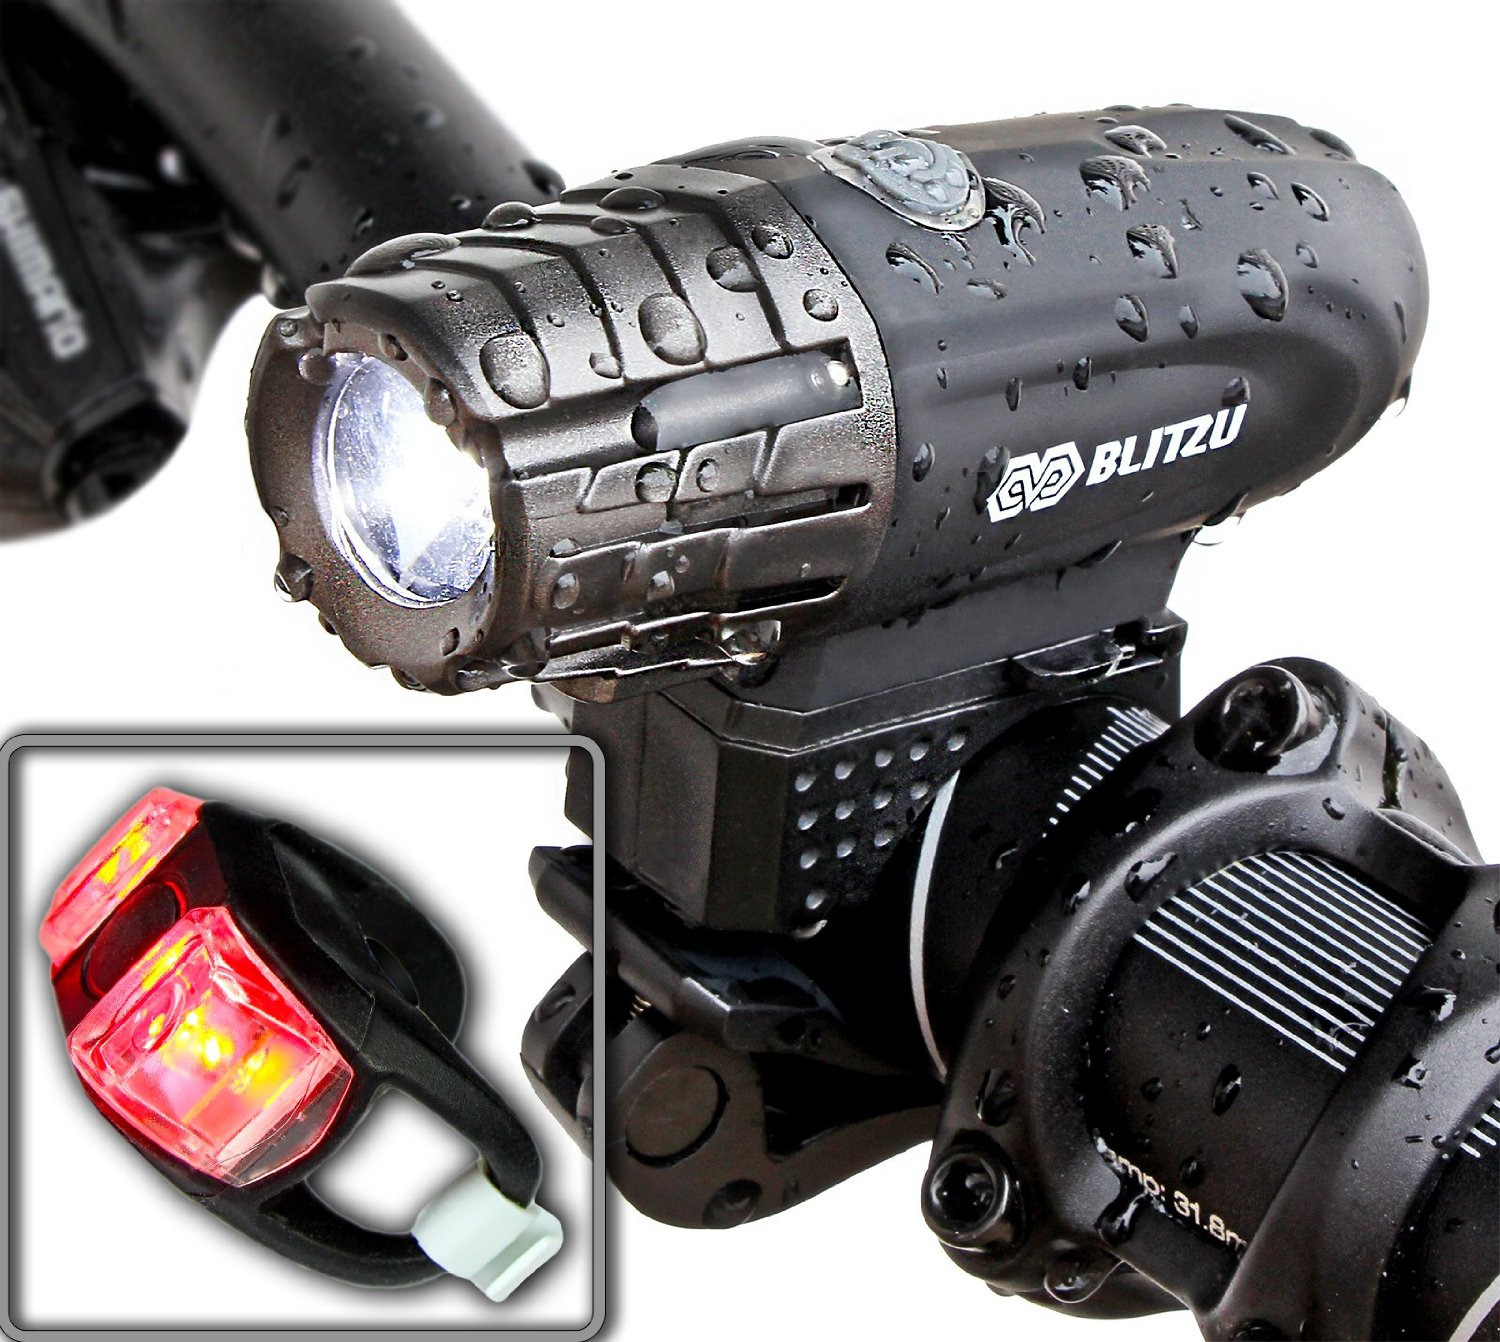 Super Bright USB Rechargeable Bike Light